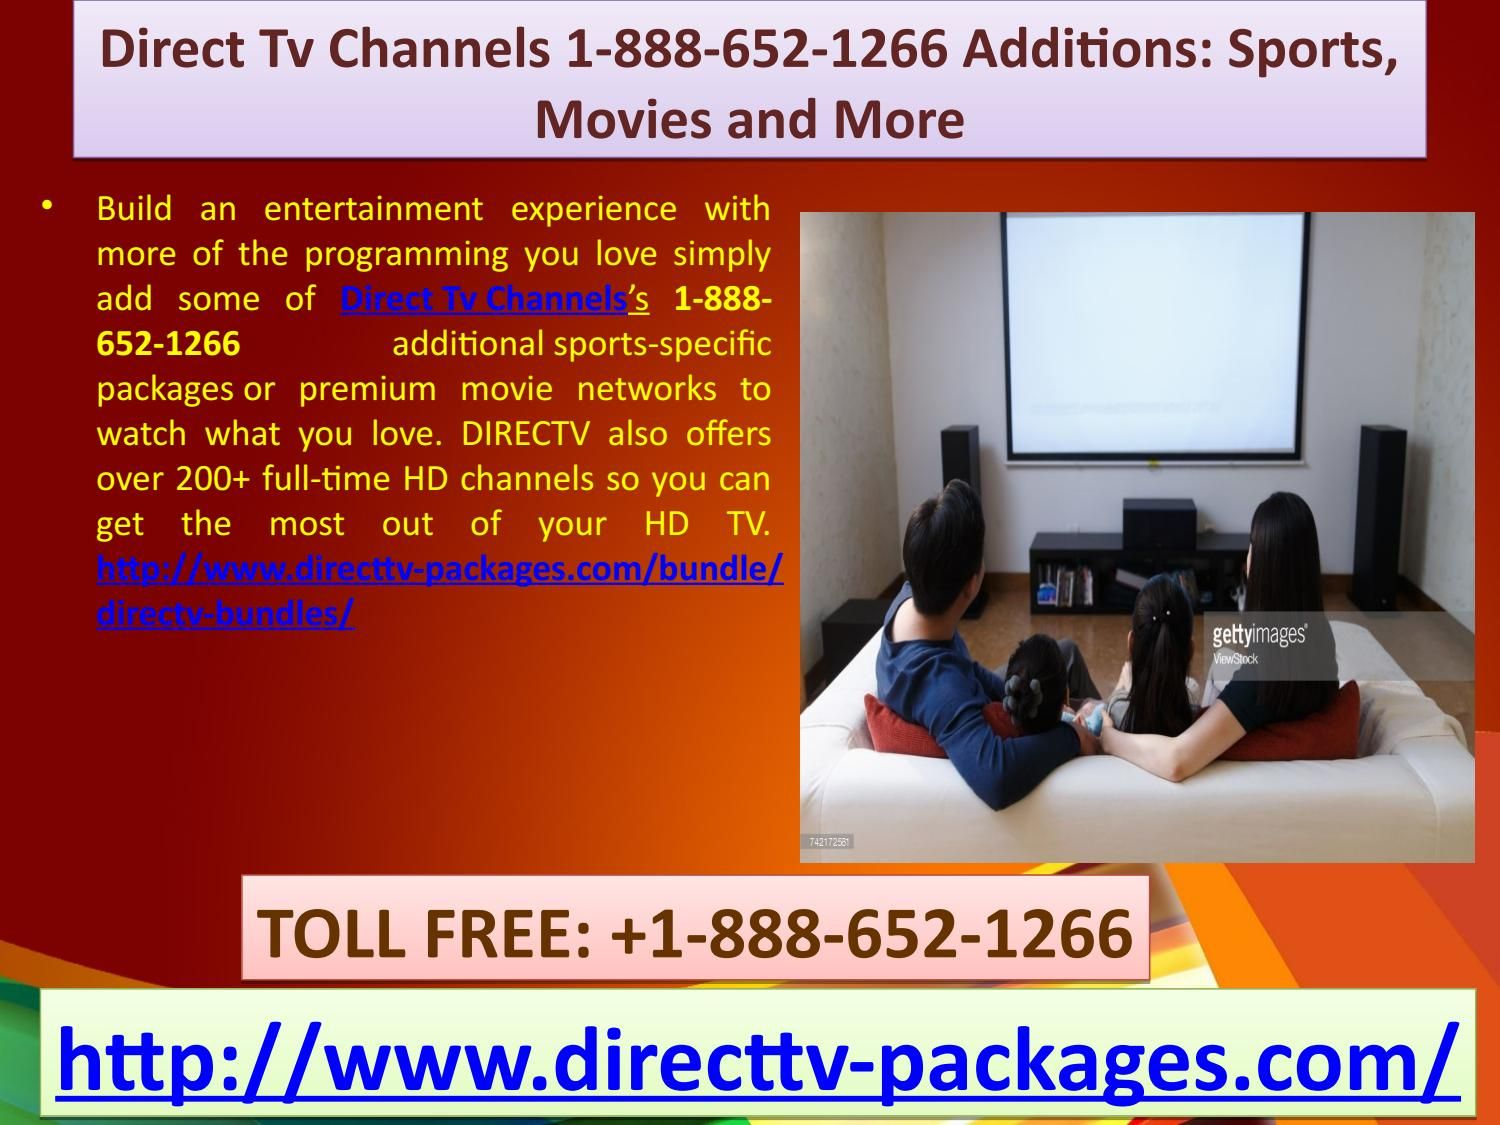 Direct Tv Channels 18886521266 Additions Sports